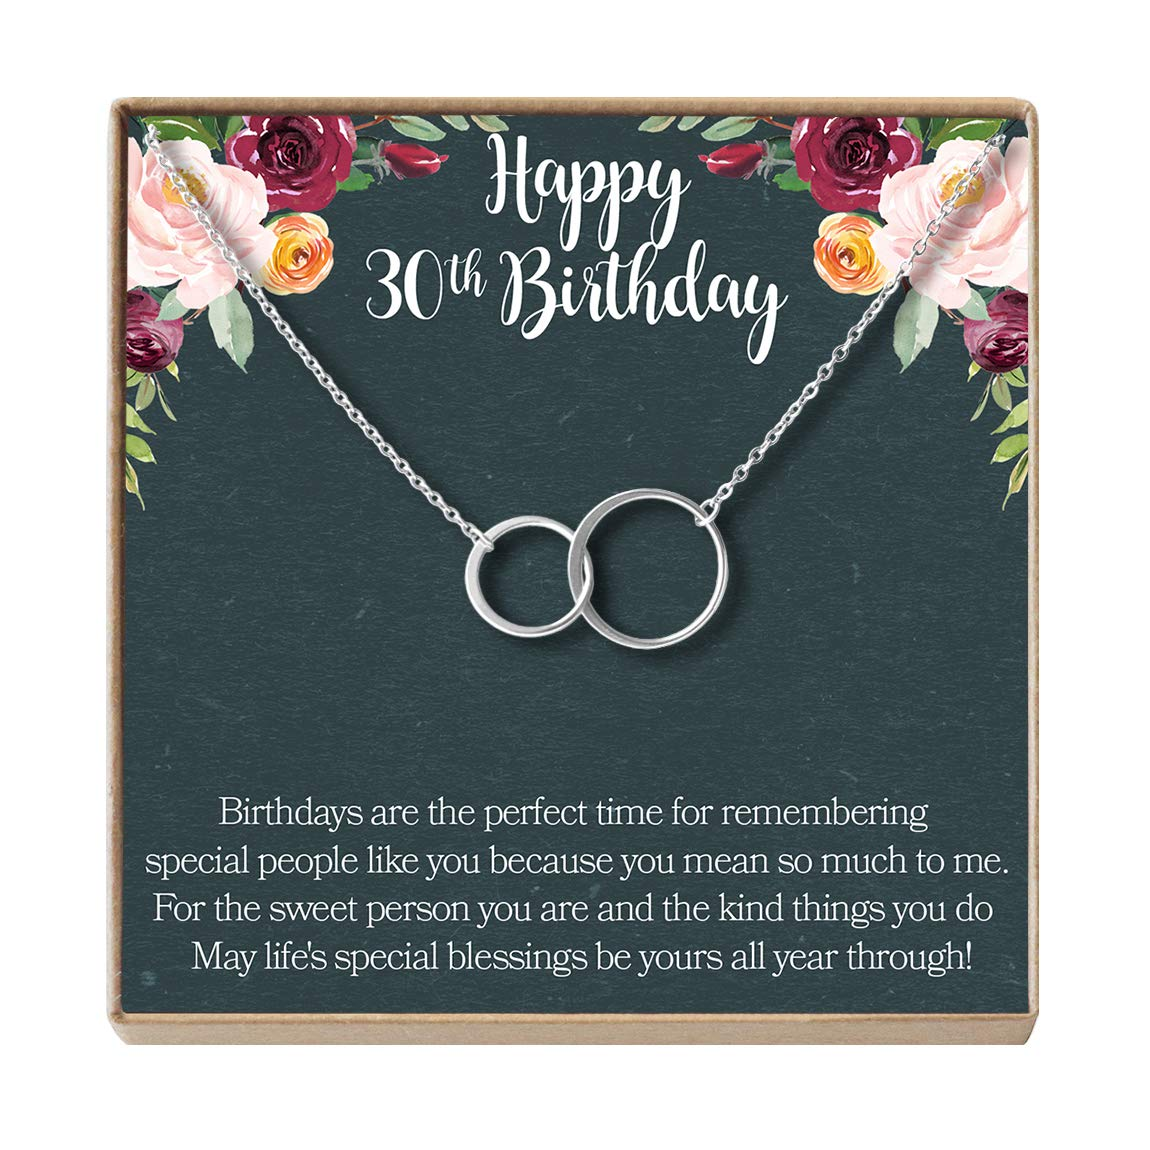 Birthday Gift Jewlery Gift for Her Dear Ava 30th Birthday Gift Necklace 2 Asymmetrical Circles